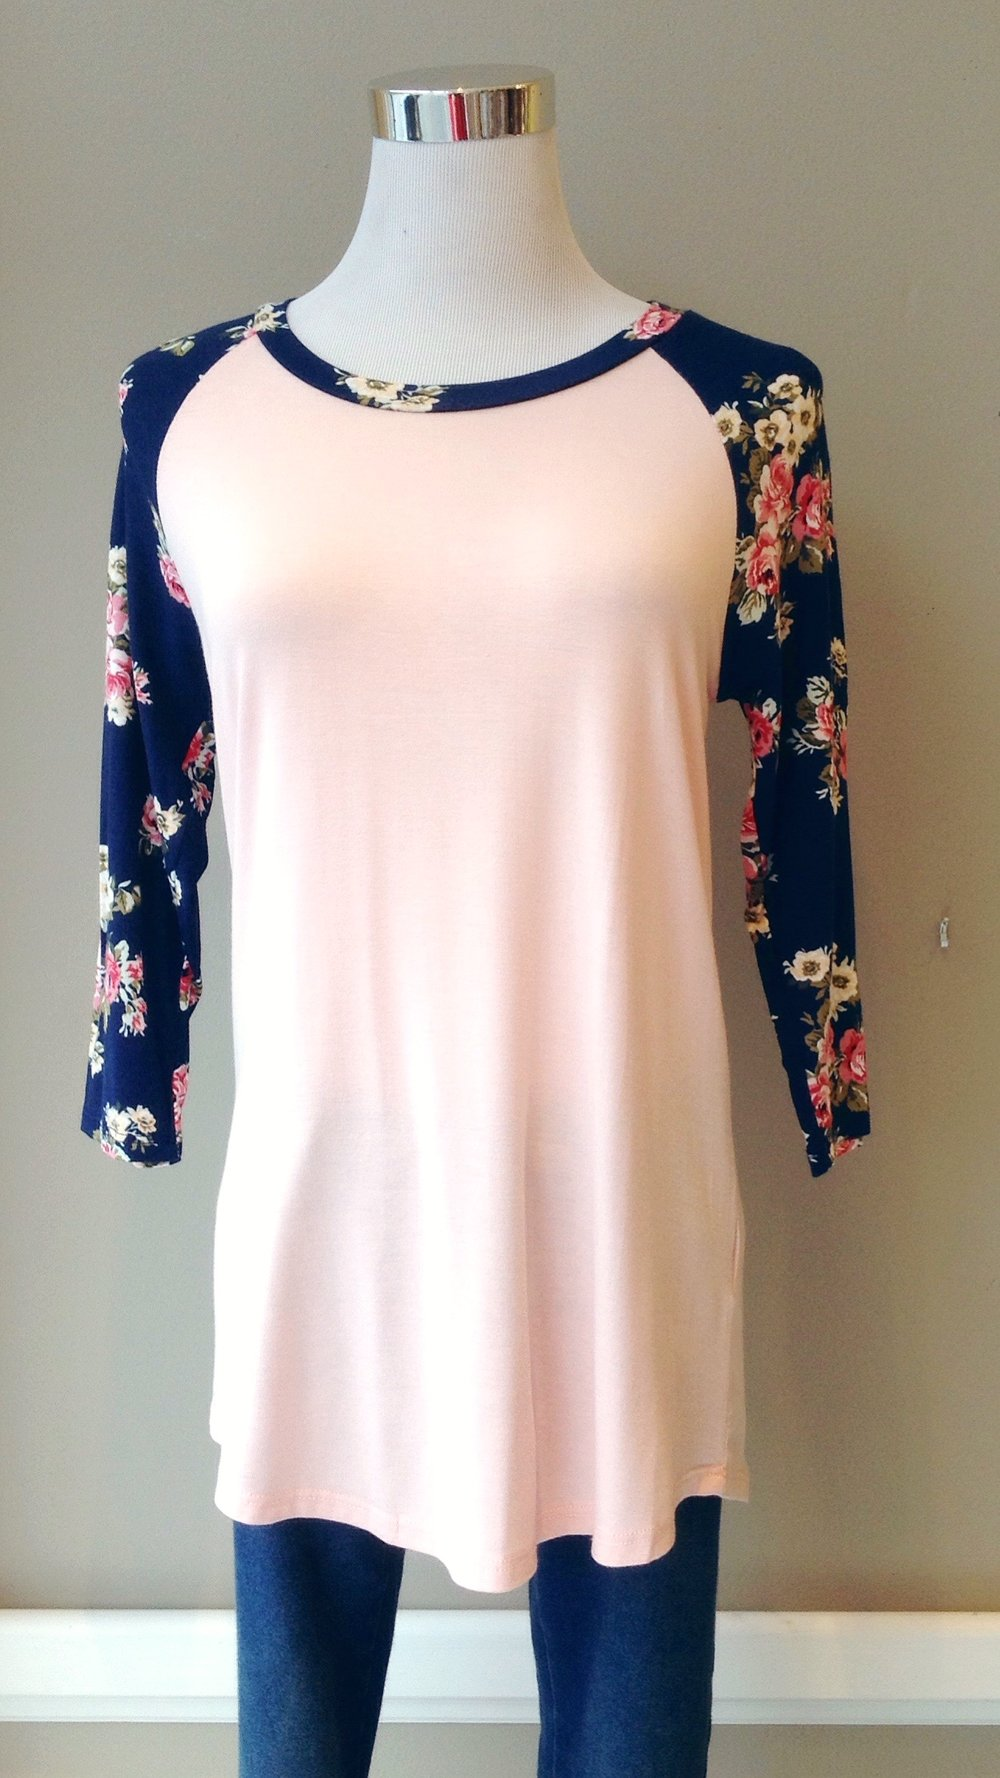 Pink and navy floral baseball top, $28